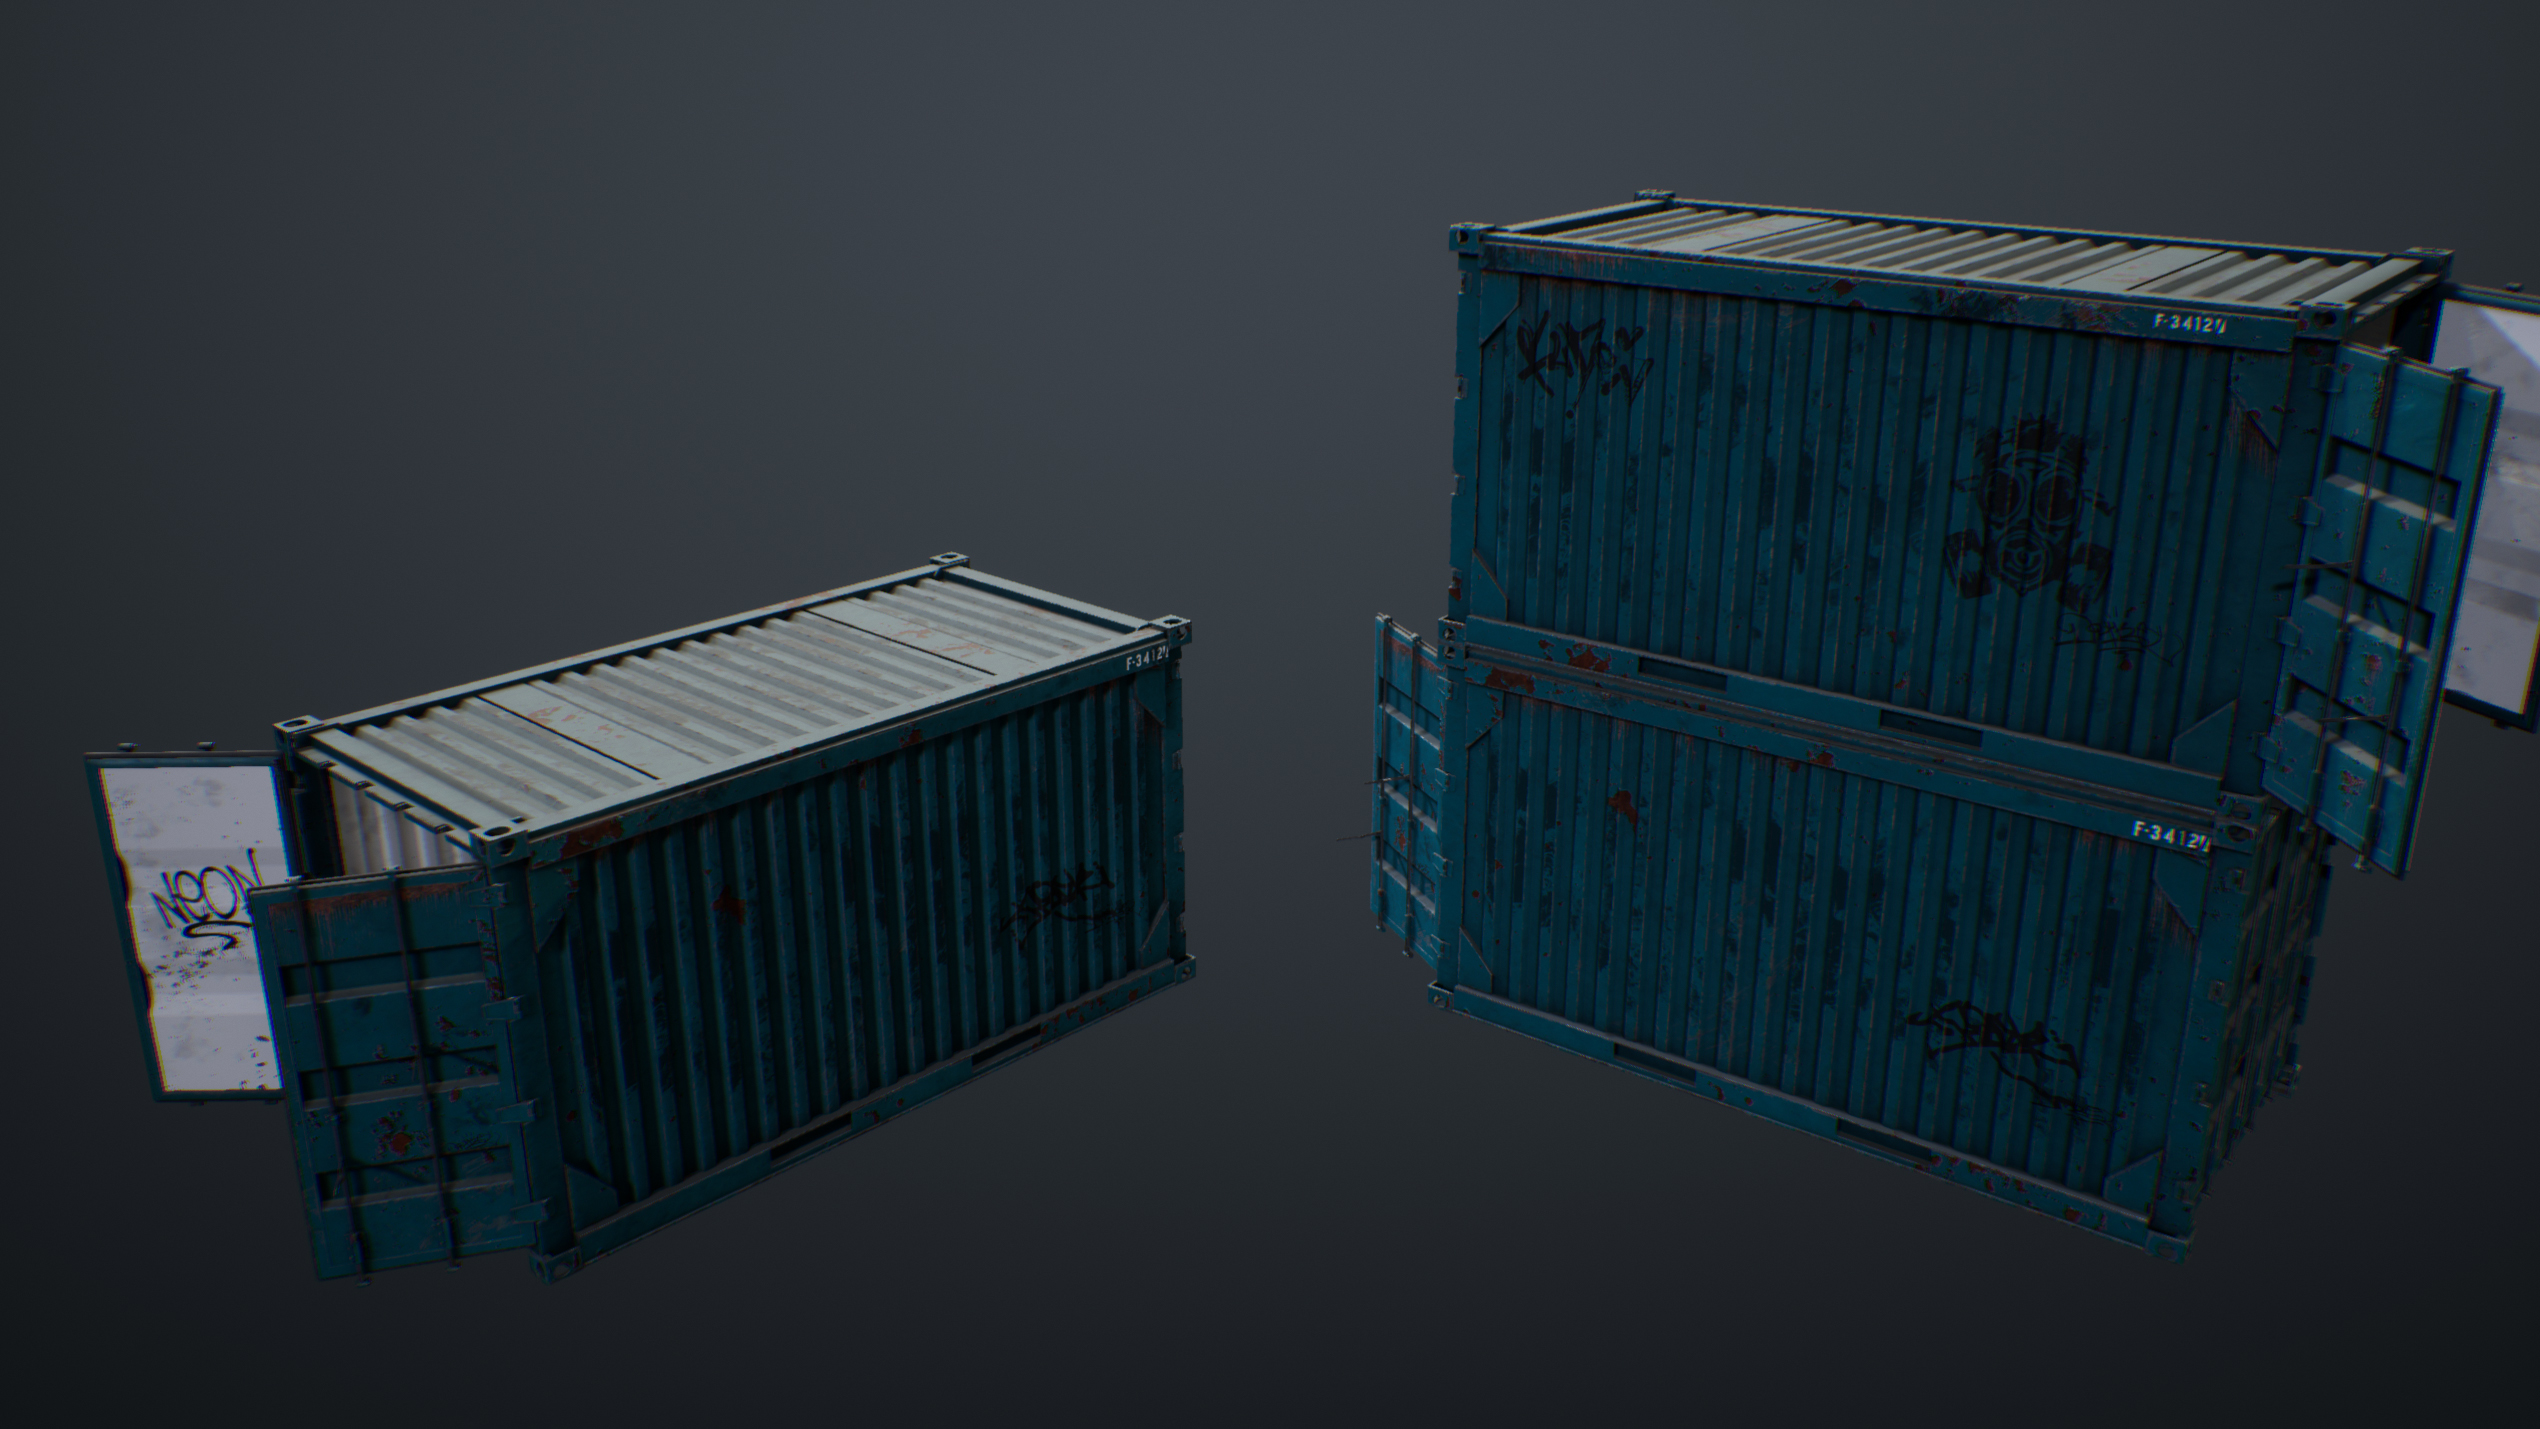 UE4 screenshot back view shot of containers